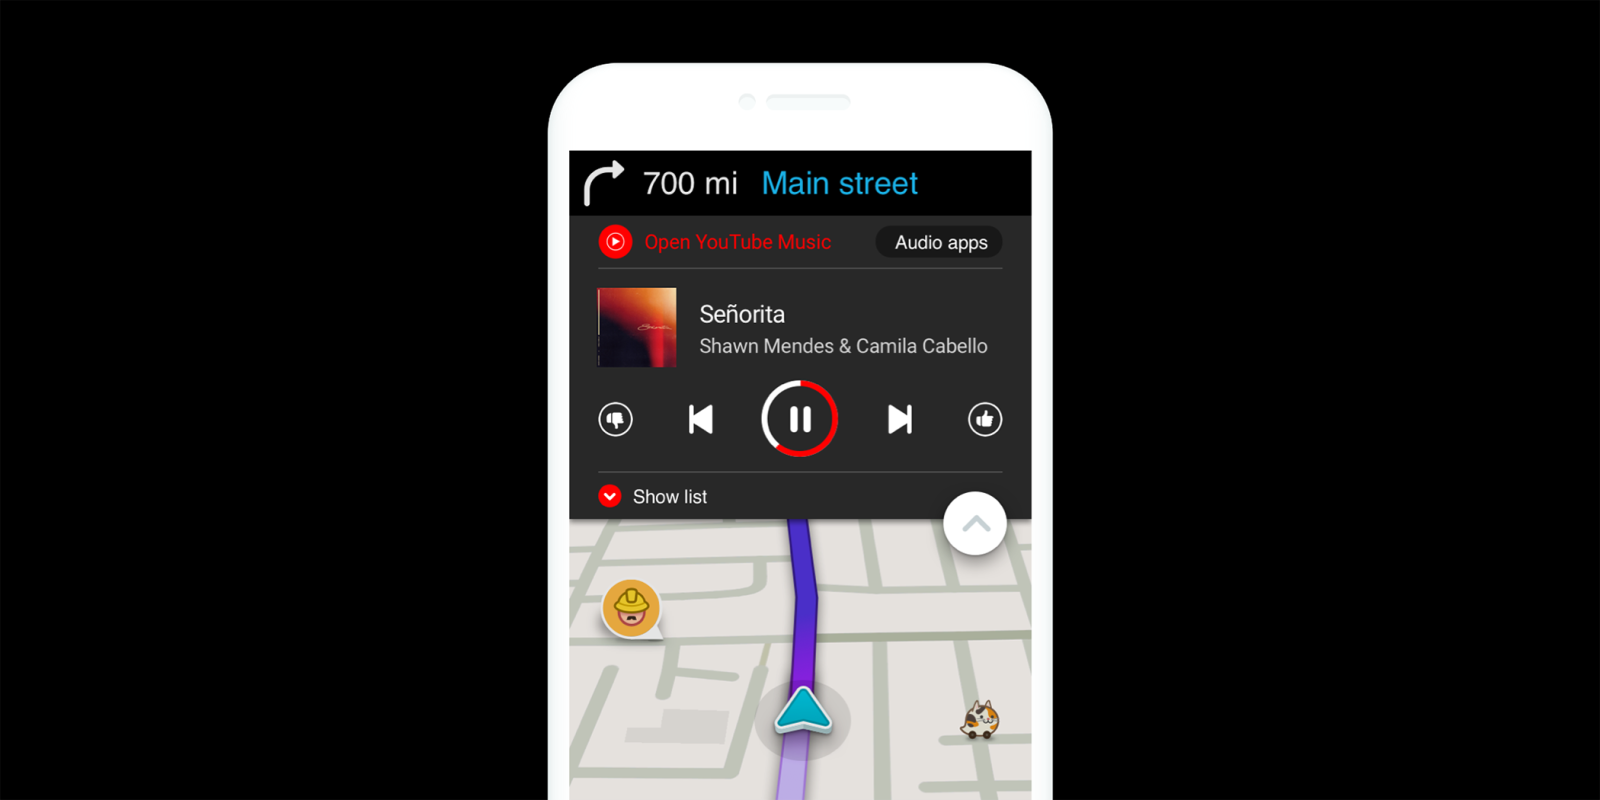 Waze gets YouTube Music integration, rolling out over 'coming weeks'